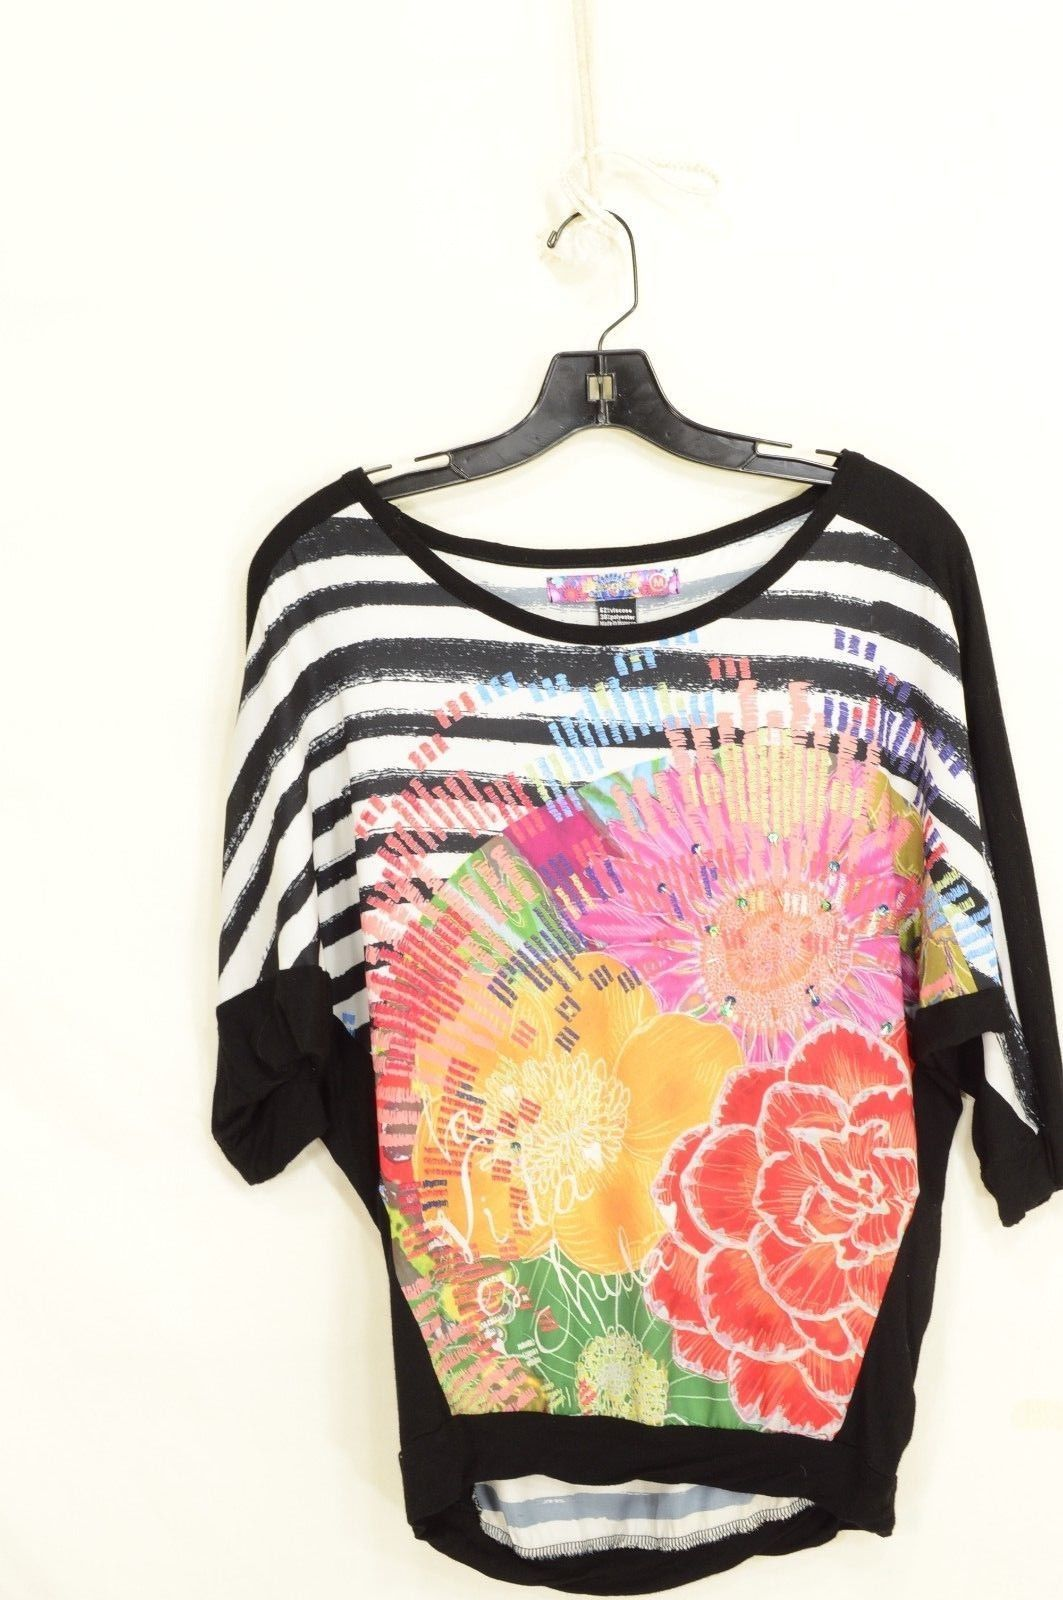 1 Desigual top SZ M black white stripes + colorful front short sleeve sequins